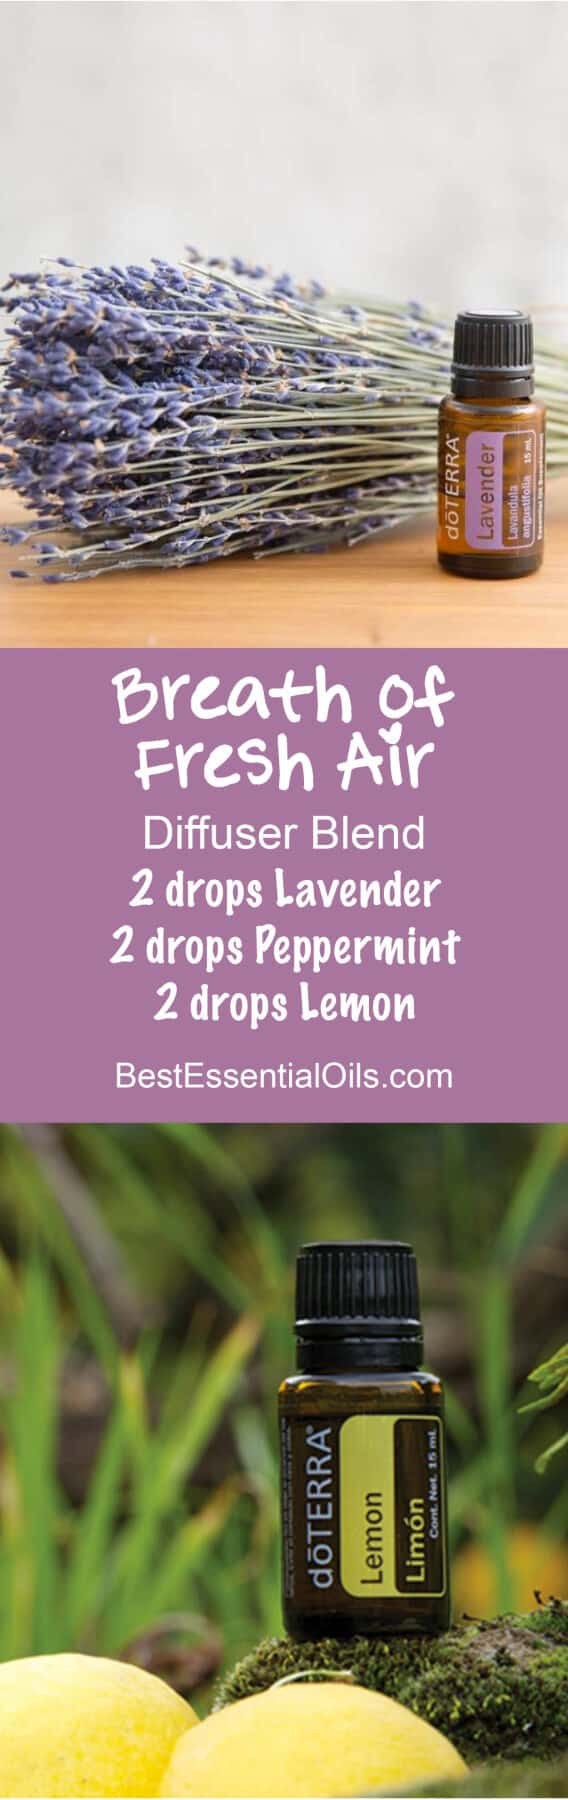 Breath of Fresh Air doTERRA Diffuser Blend